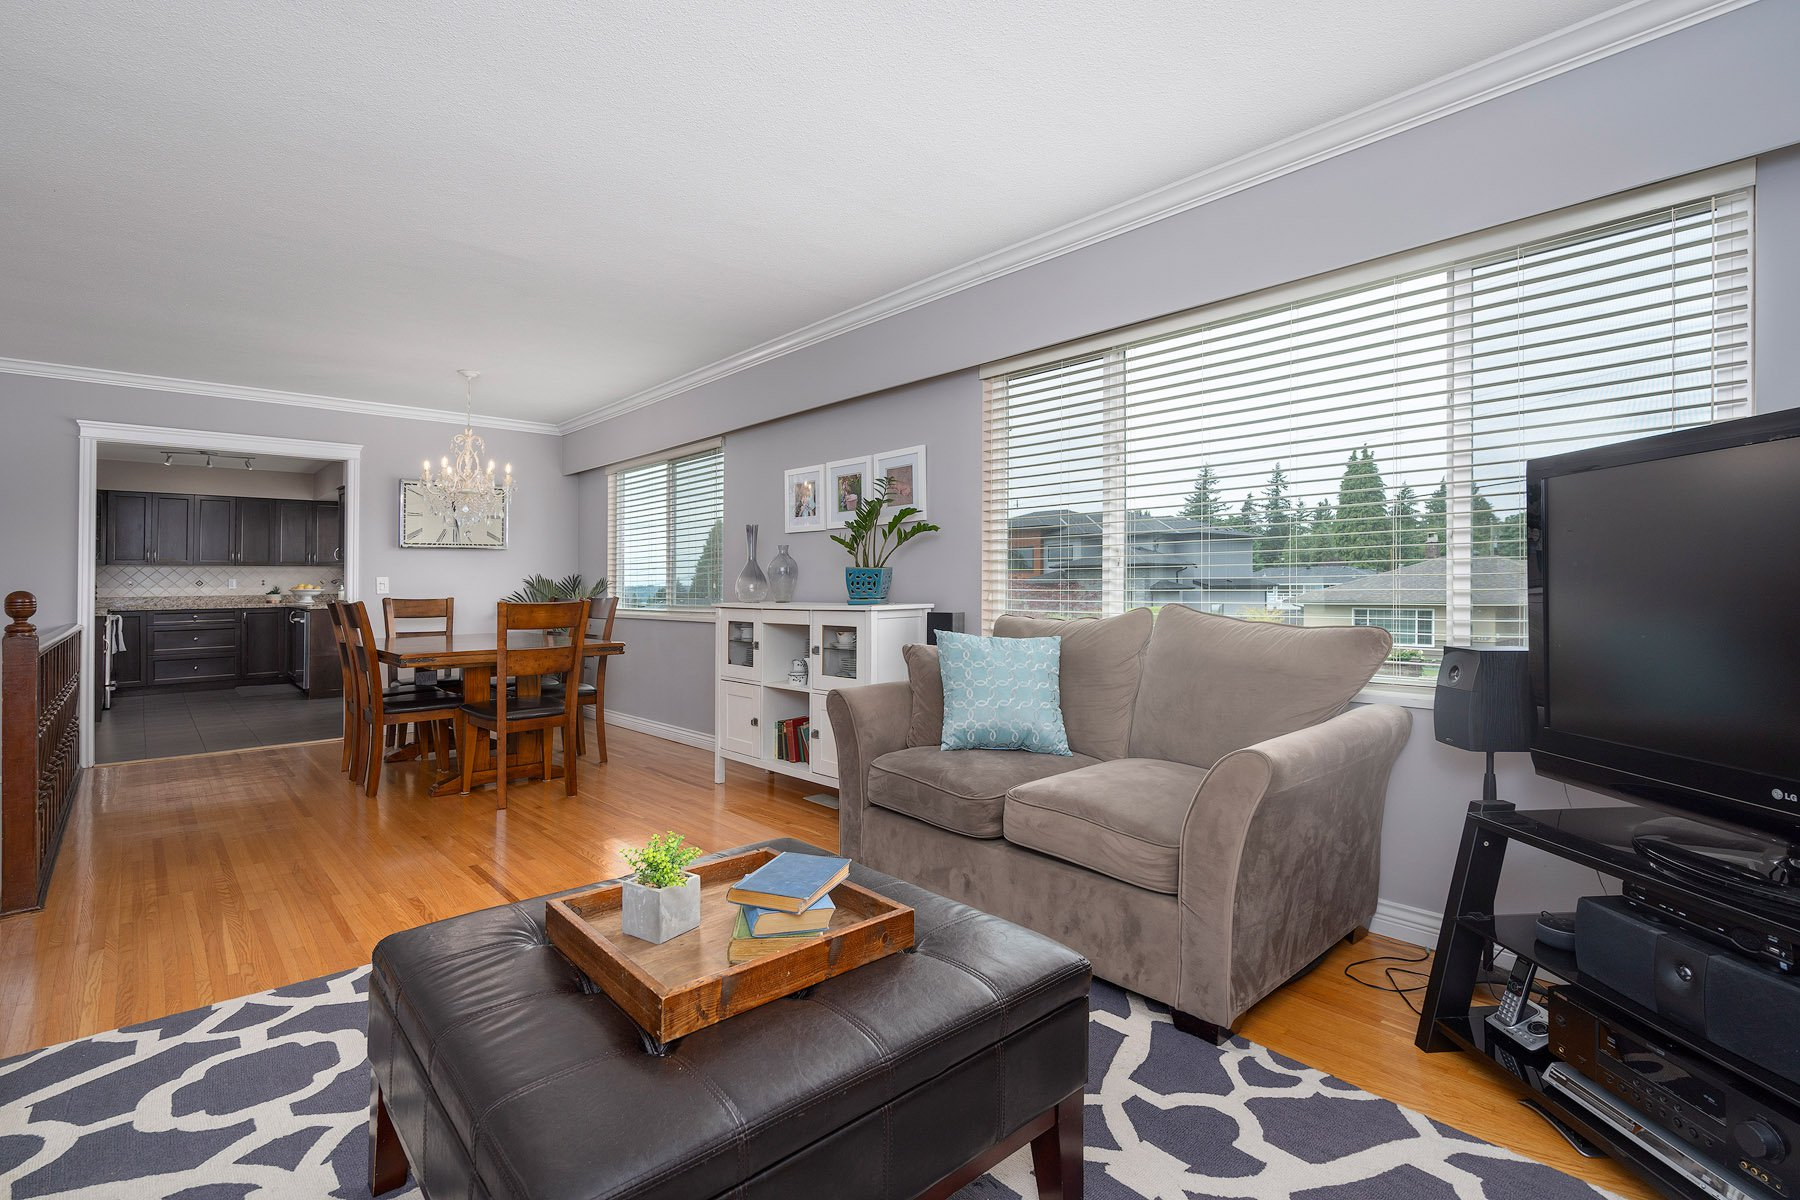 Photo 5: Photos: 423 MONTGOMERY Street in Coquitlam: Central Coquitlam House for sale : MLS®# R2380693